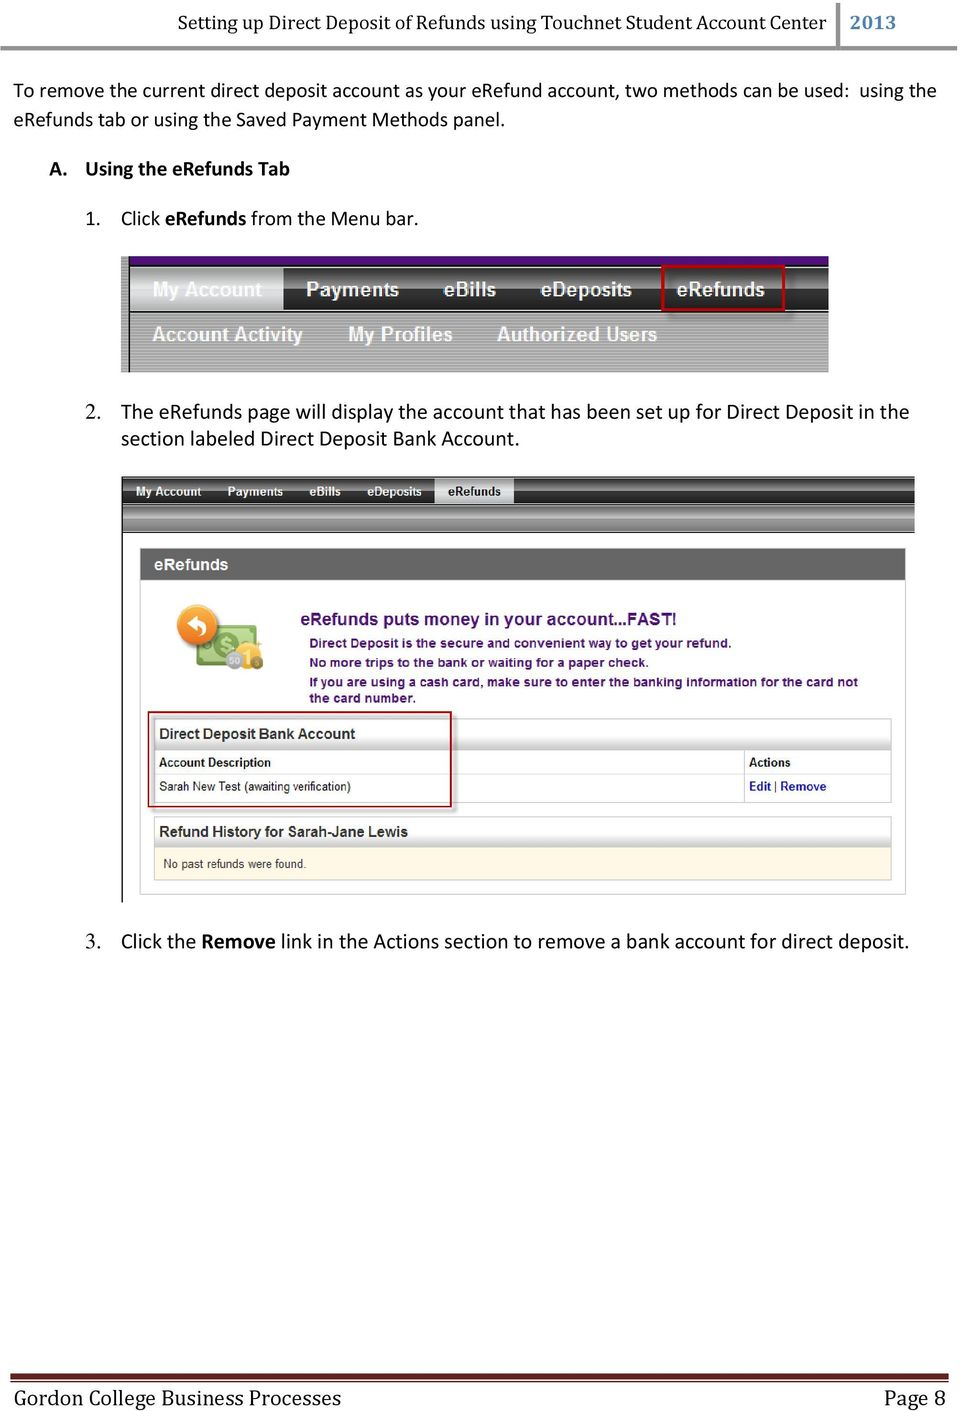 Setting up Direct Deposit of Refunds using Touchnet Student